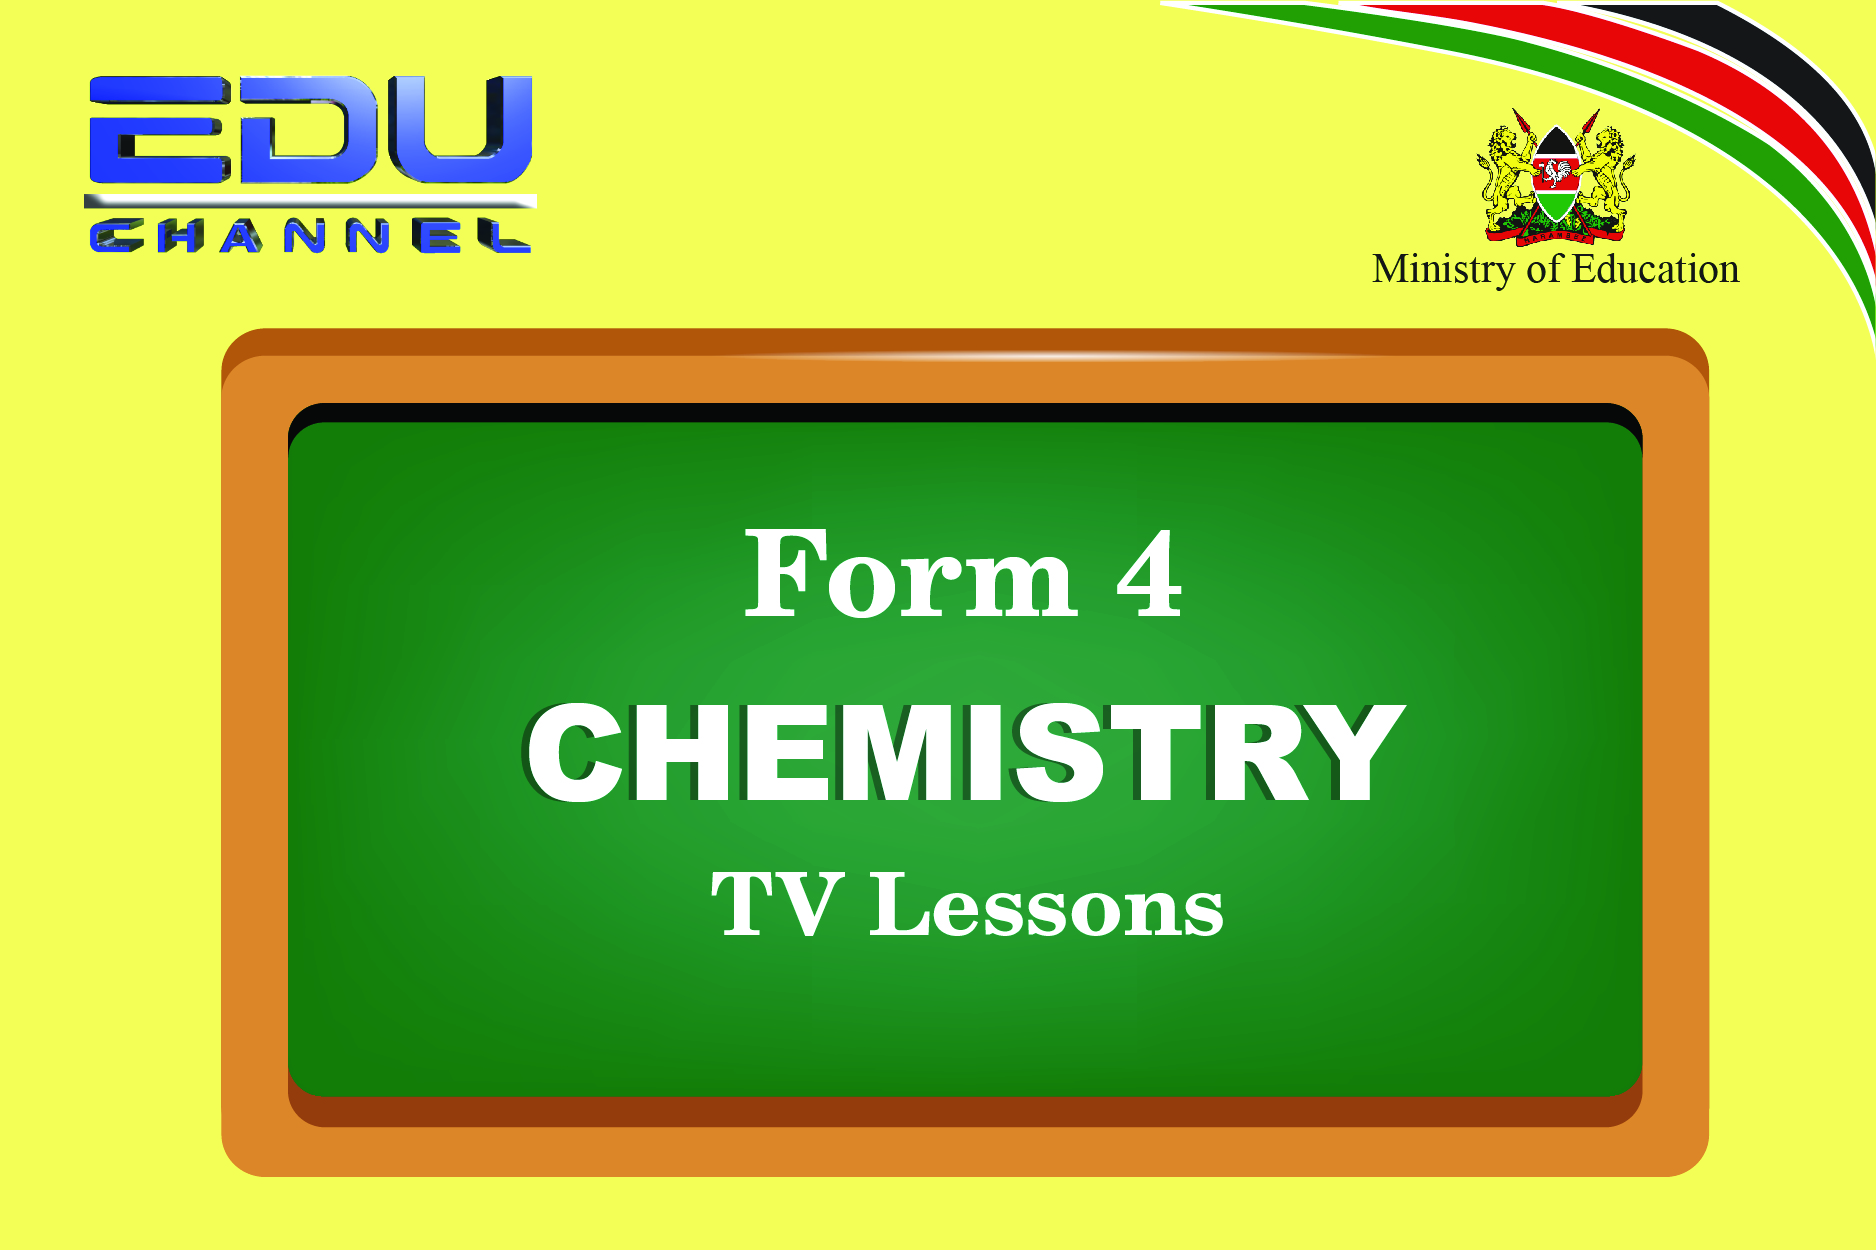 Form 4 Chemistry Lesson 1: Acid and Bases